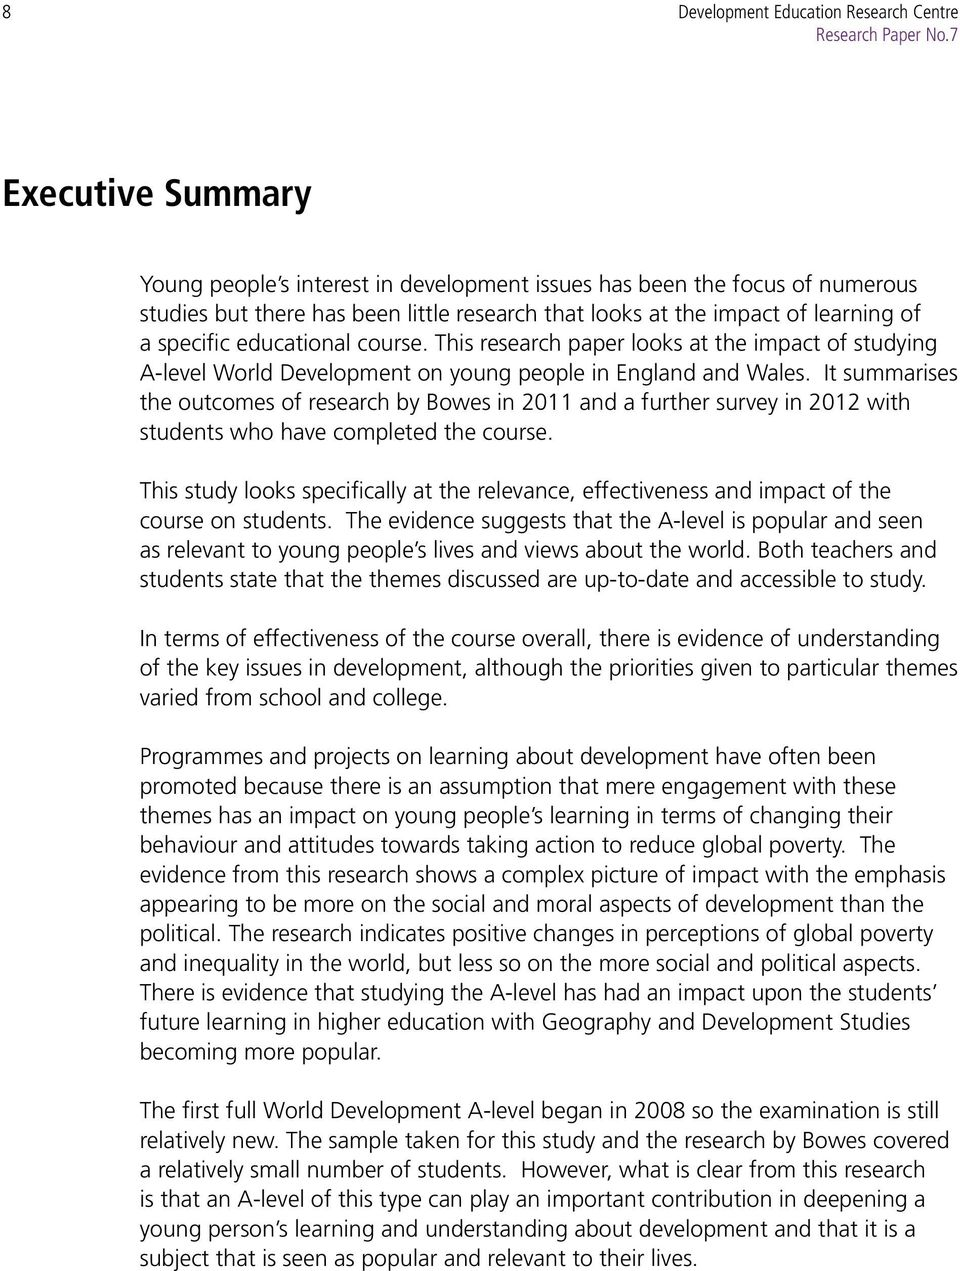 educational course. This research paper looks at the impact of studying A-level World Development on young people in England and Wales.